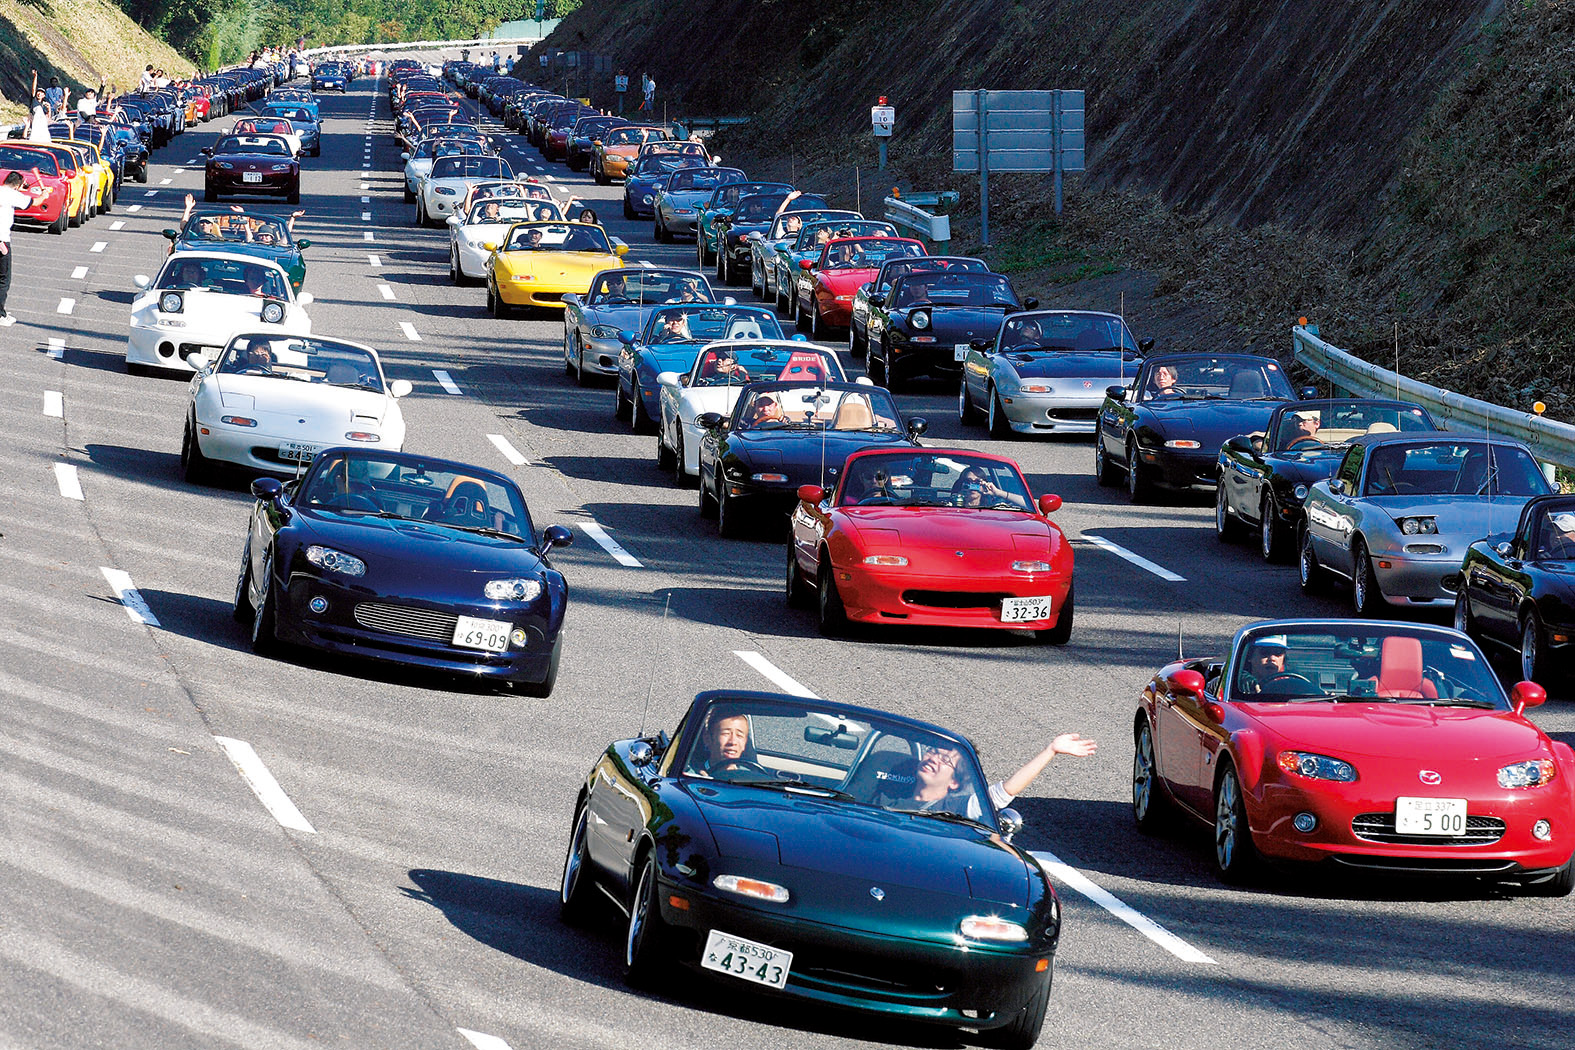 mazda_mx-5_miata_roadster_20th_anniversary_reunion10